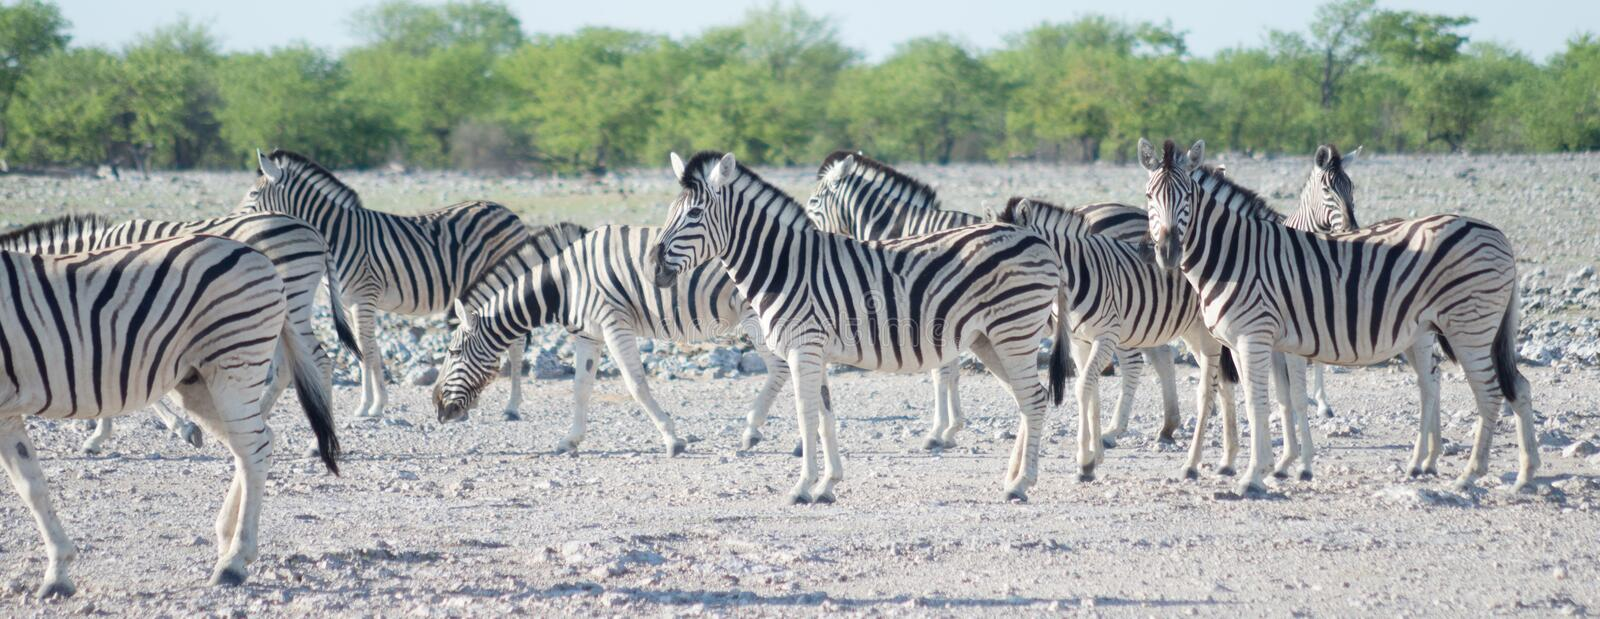 Zebras in Africa. Image of zebras in Africa royalty free stock photography